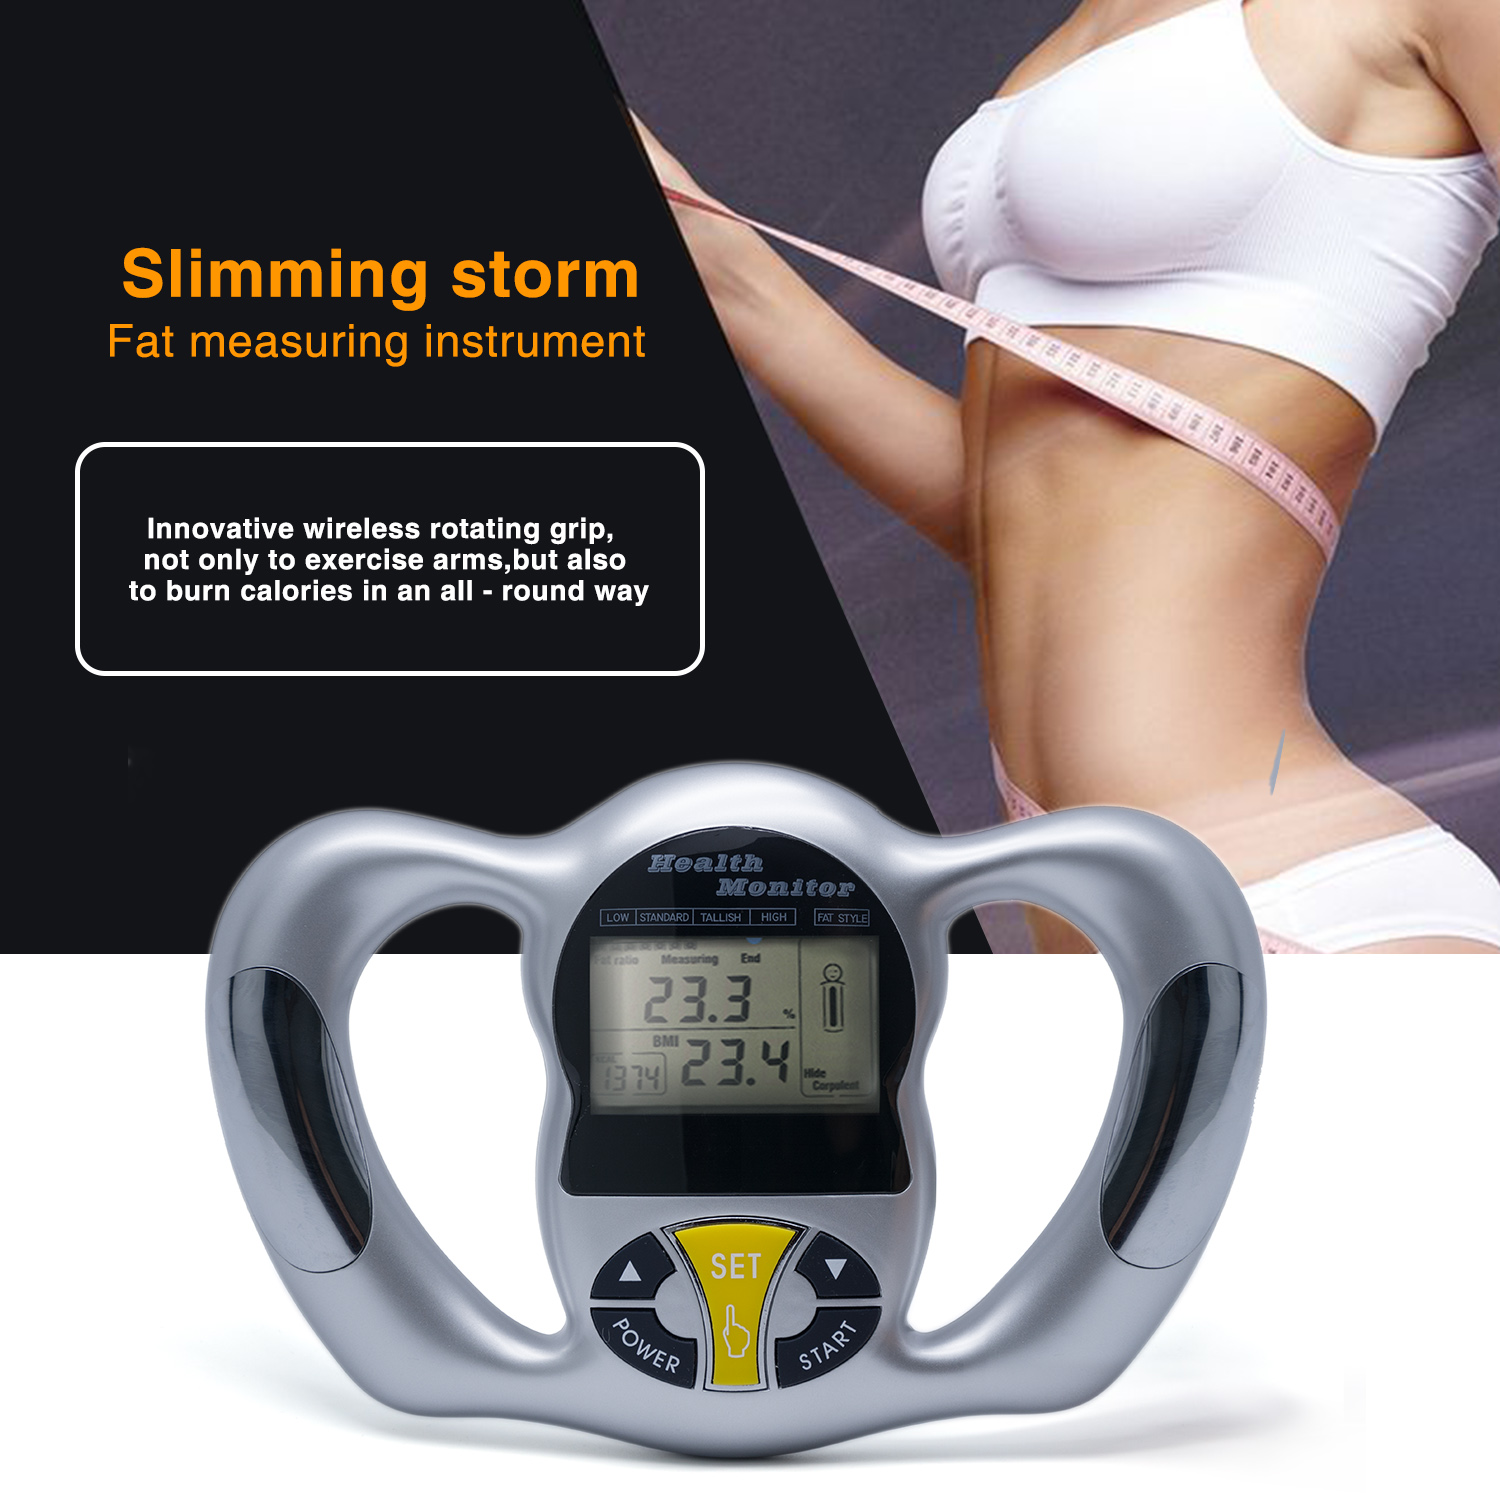 Calculator Bmi-Meter Lcd-Fat-Analyzer Weight-Loss-Tester Calorie Body-Health-Monitor